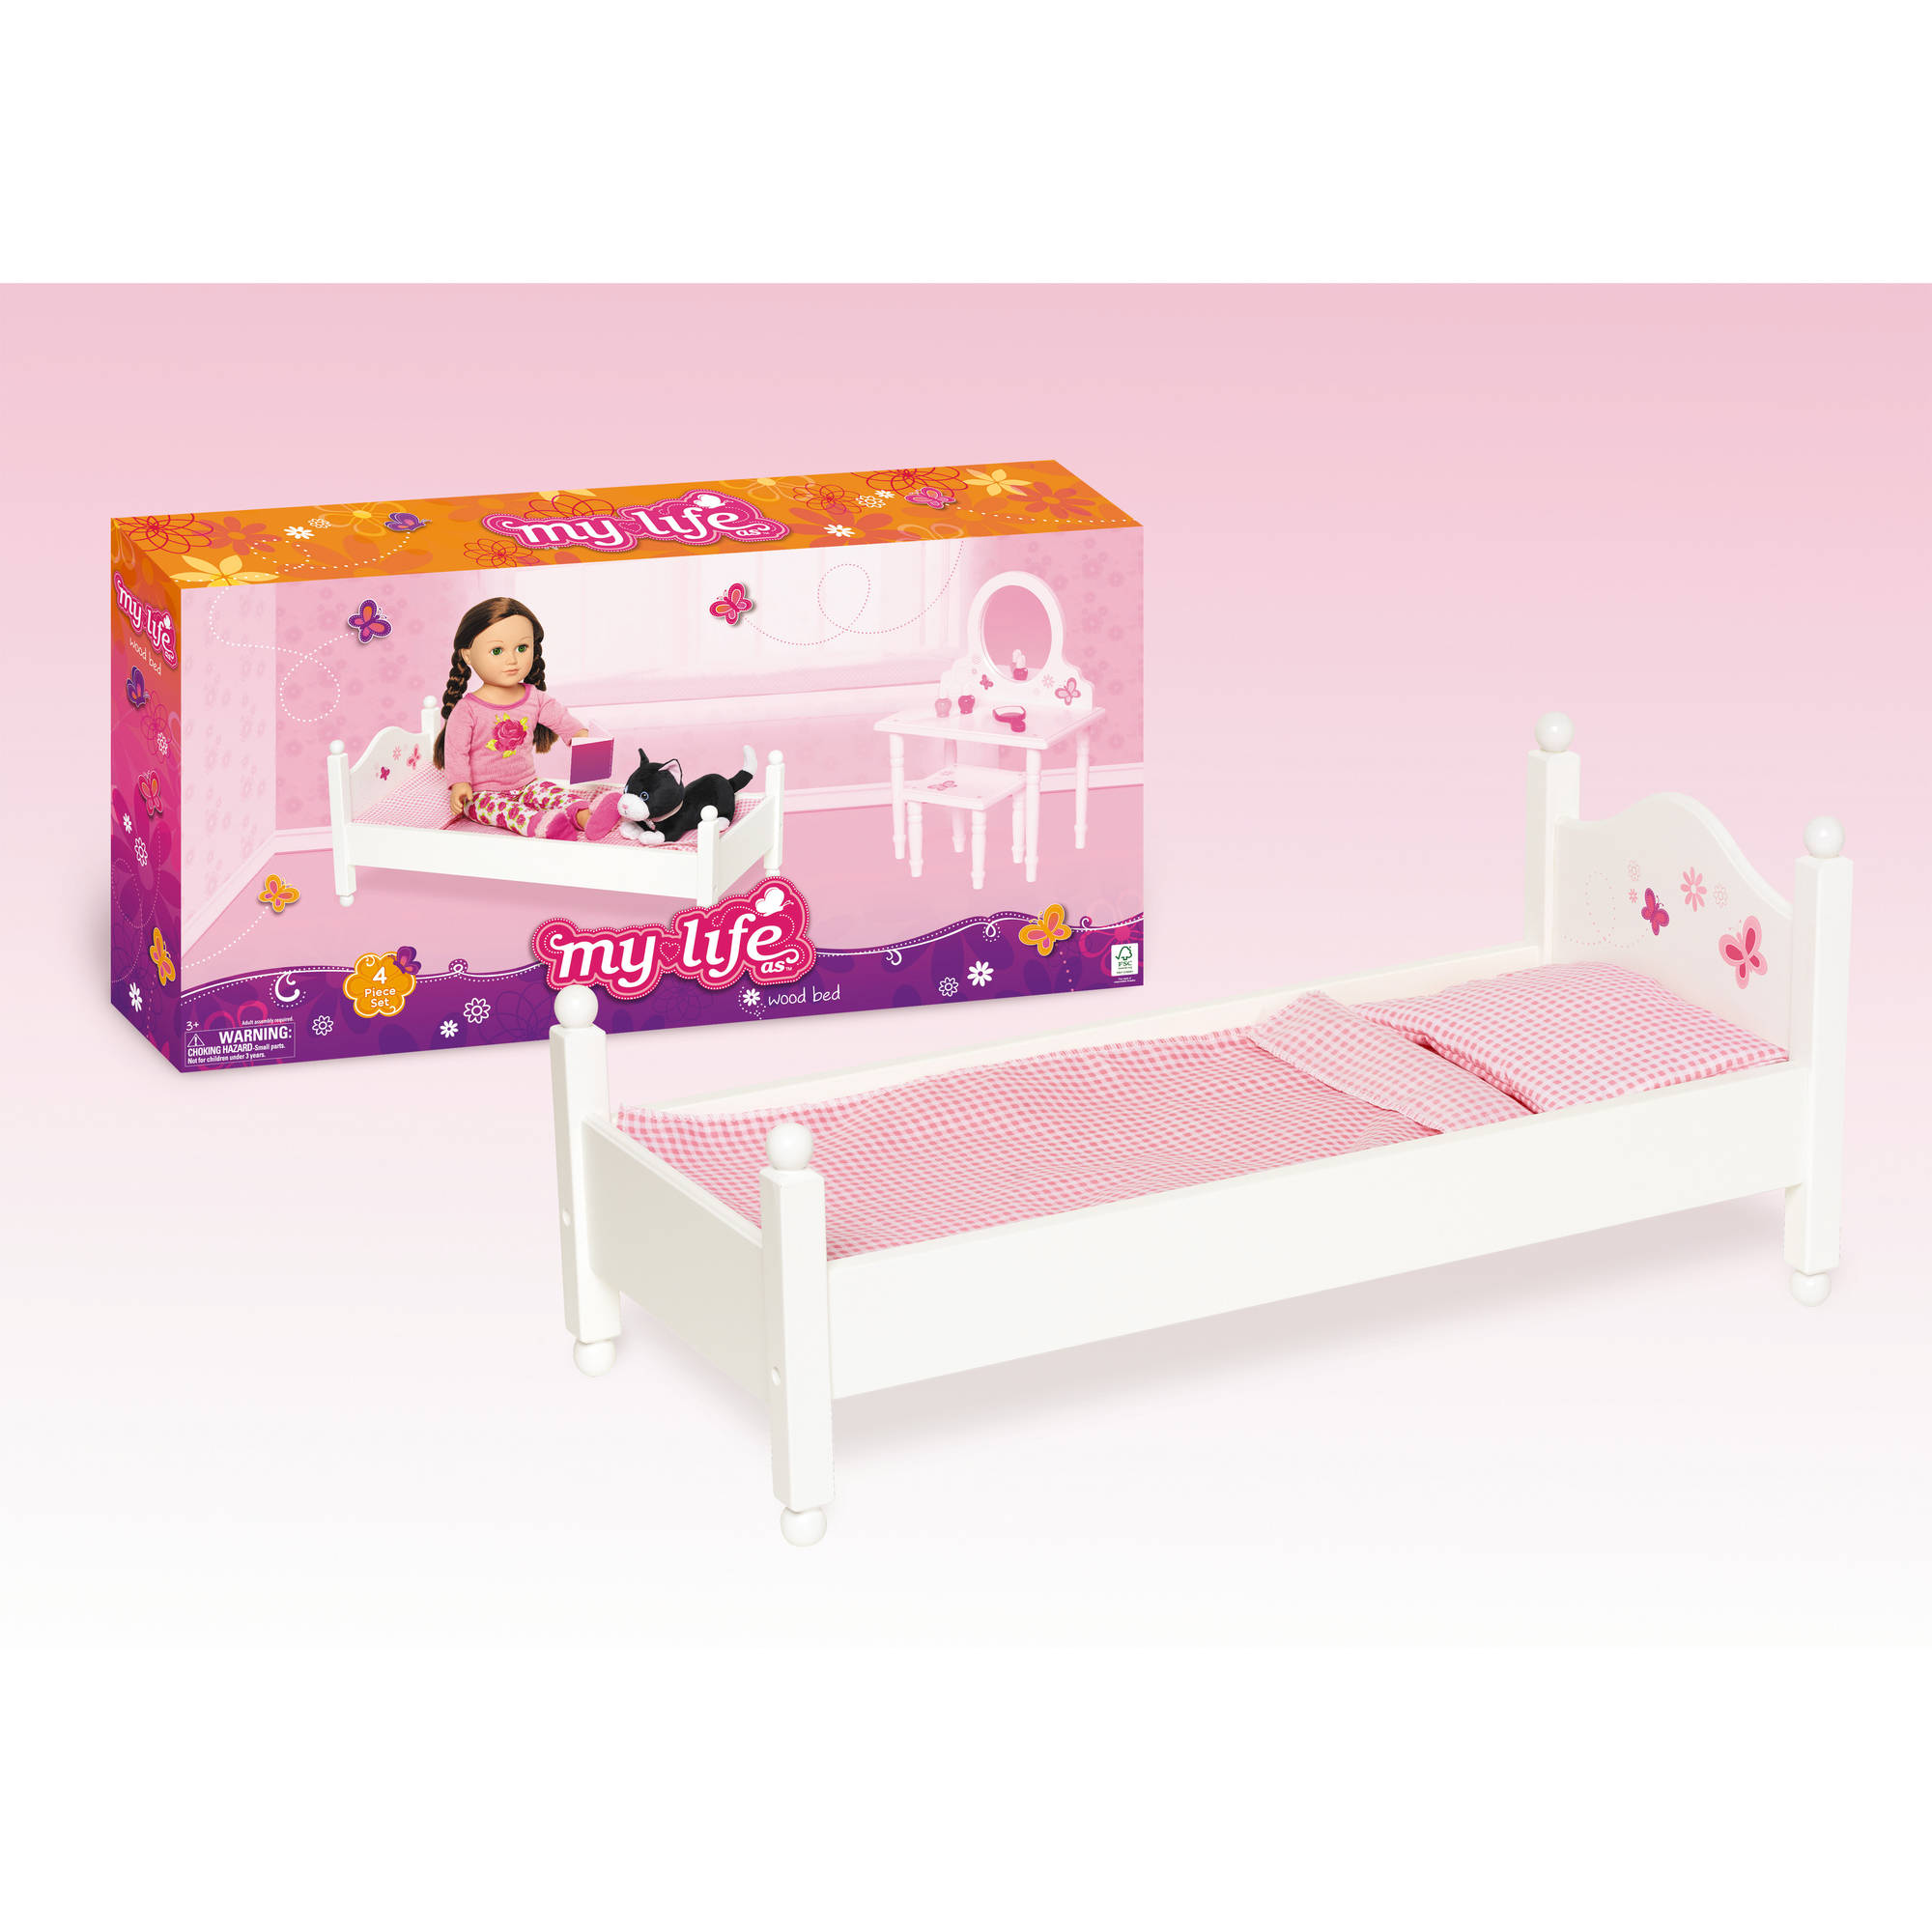 "My Life As My Life As 18"" Doll Furniture, Bed"